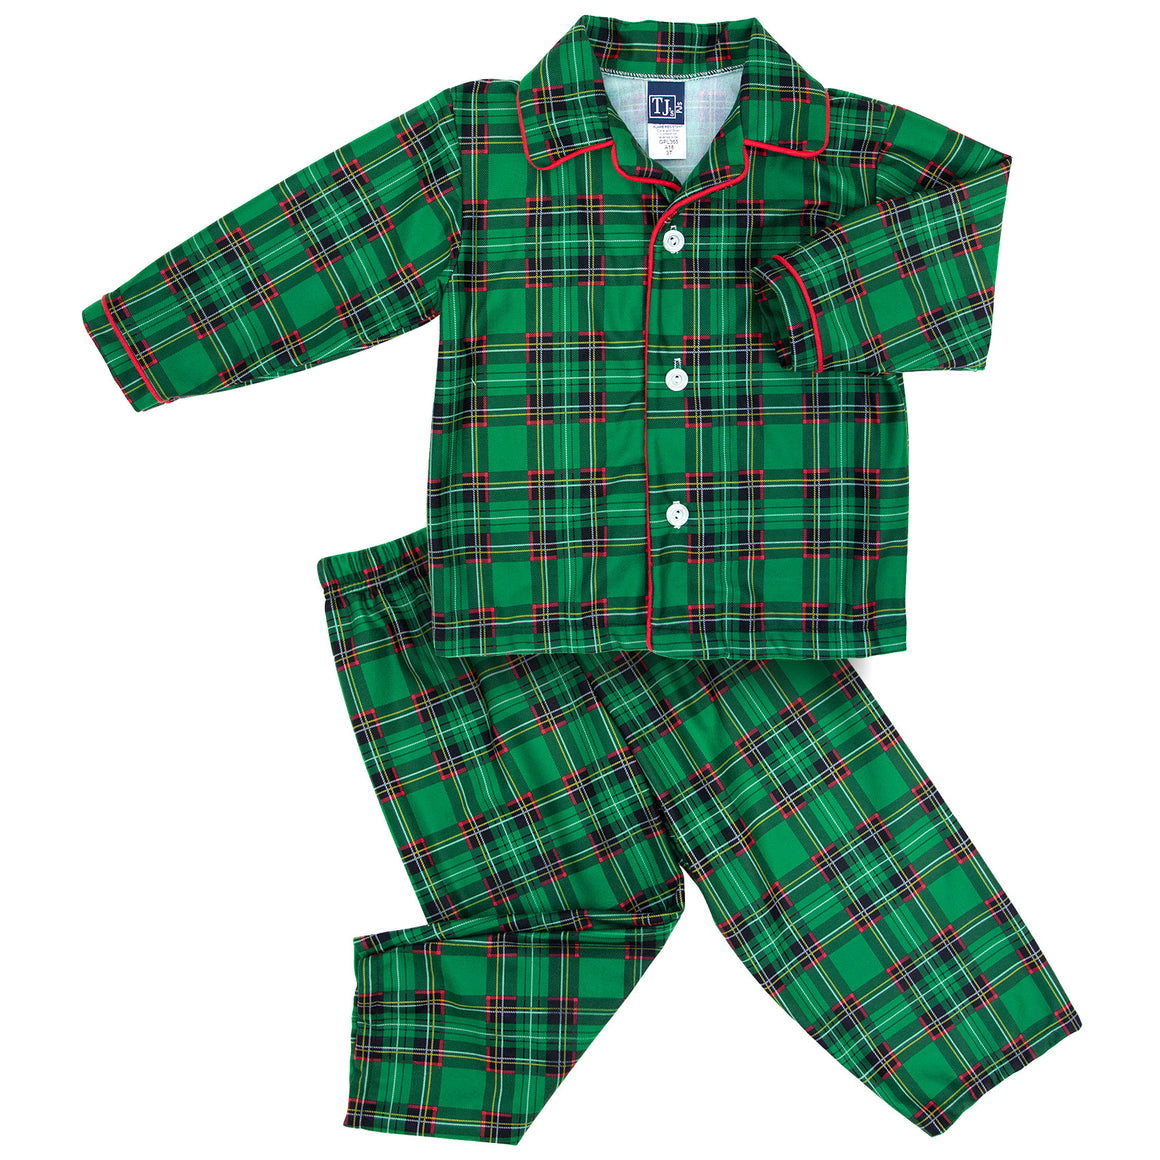 Tom & Jerry Sleepware Holiday Green Plaid Tailored Pajama Set